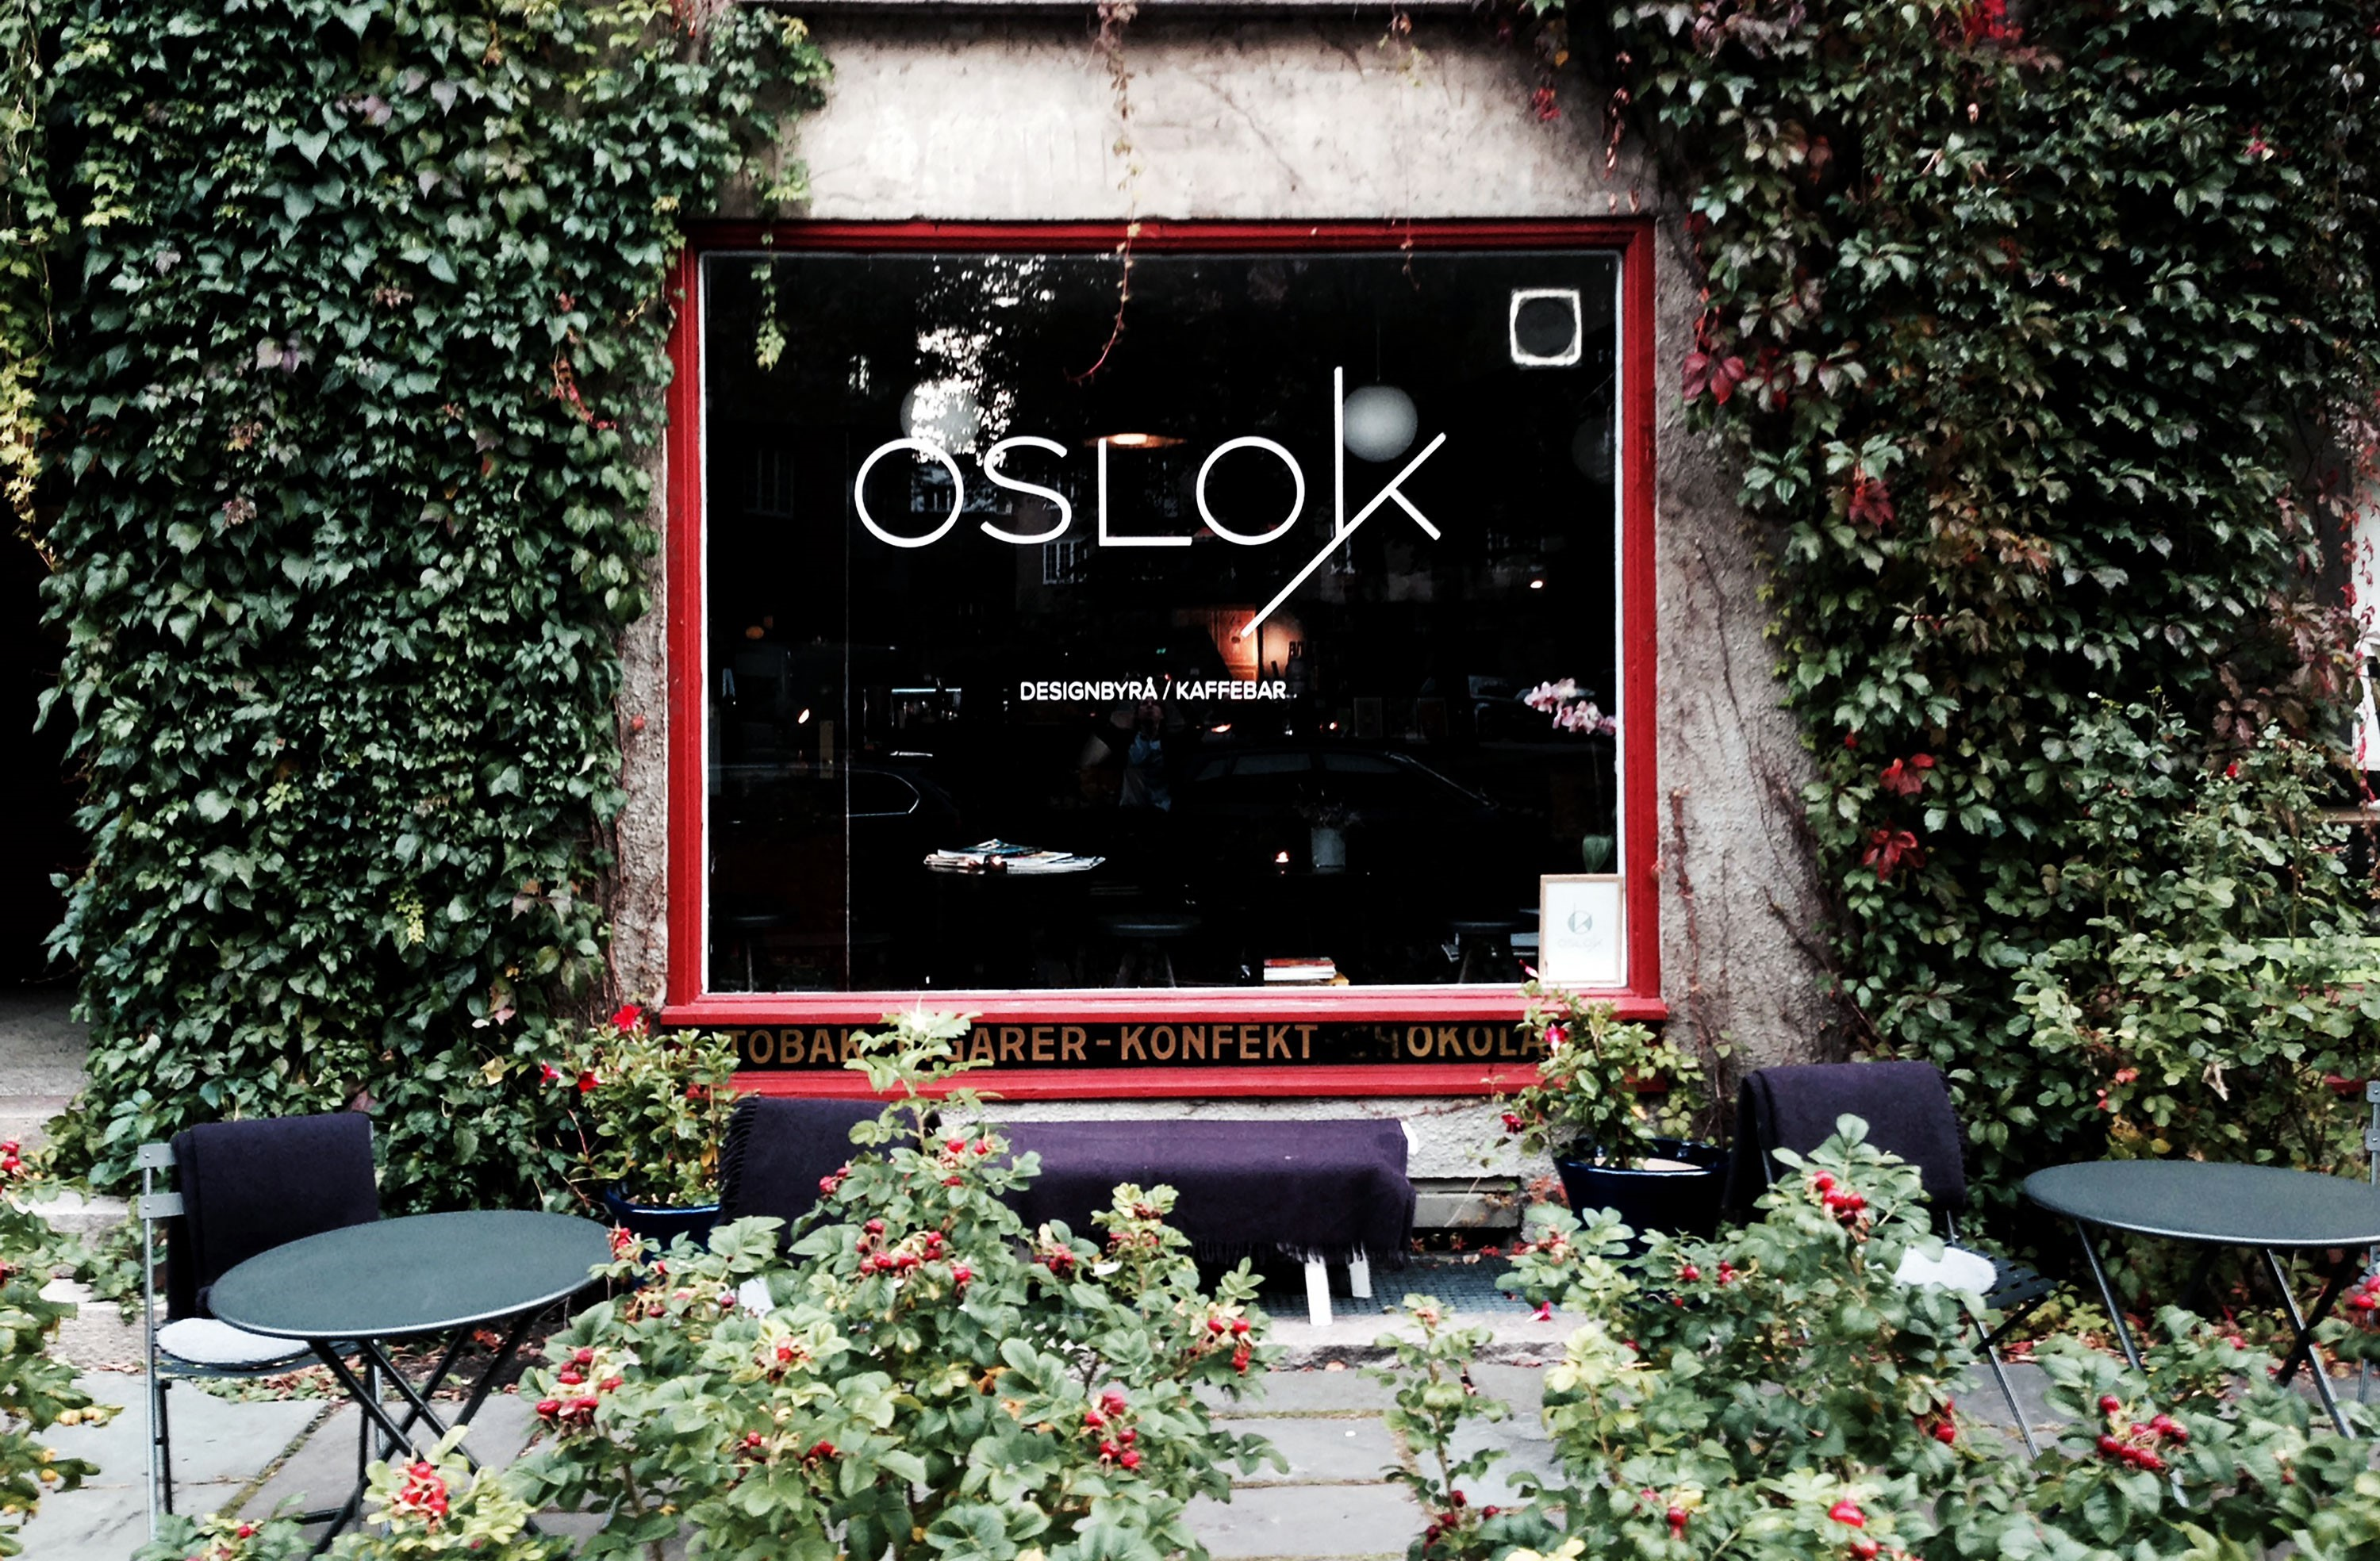 OsloK design agency and coffee shop